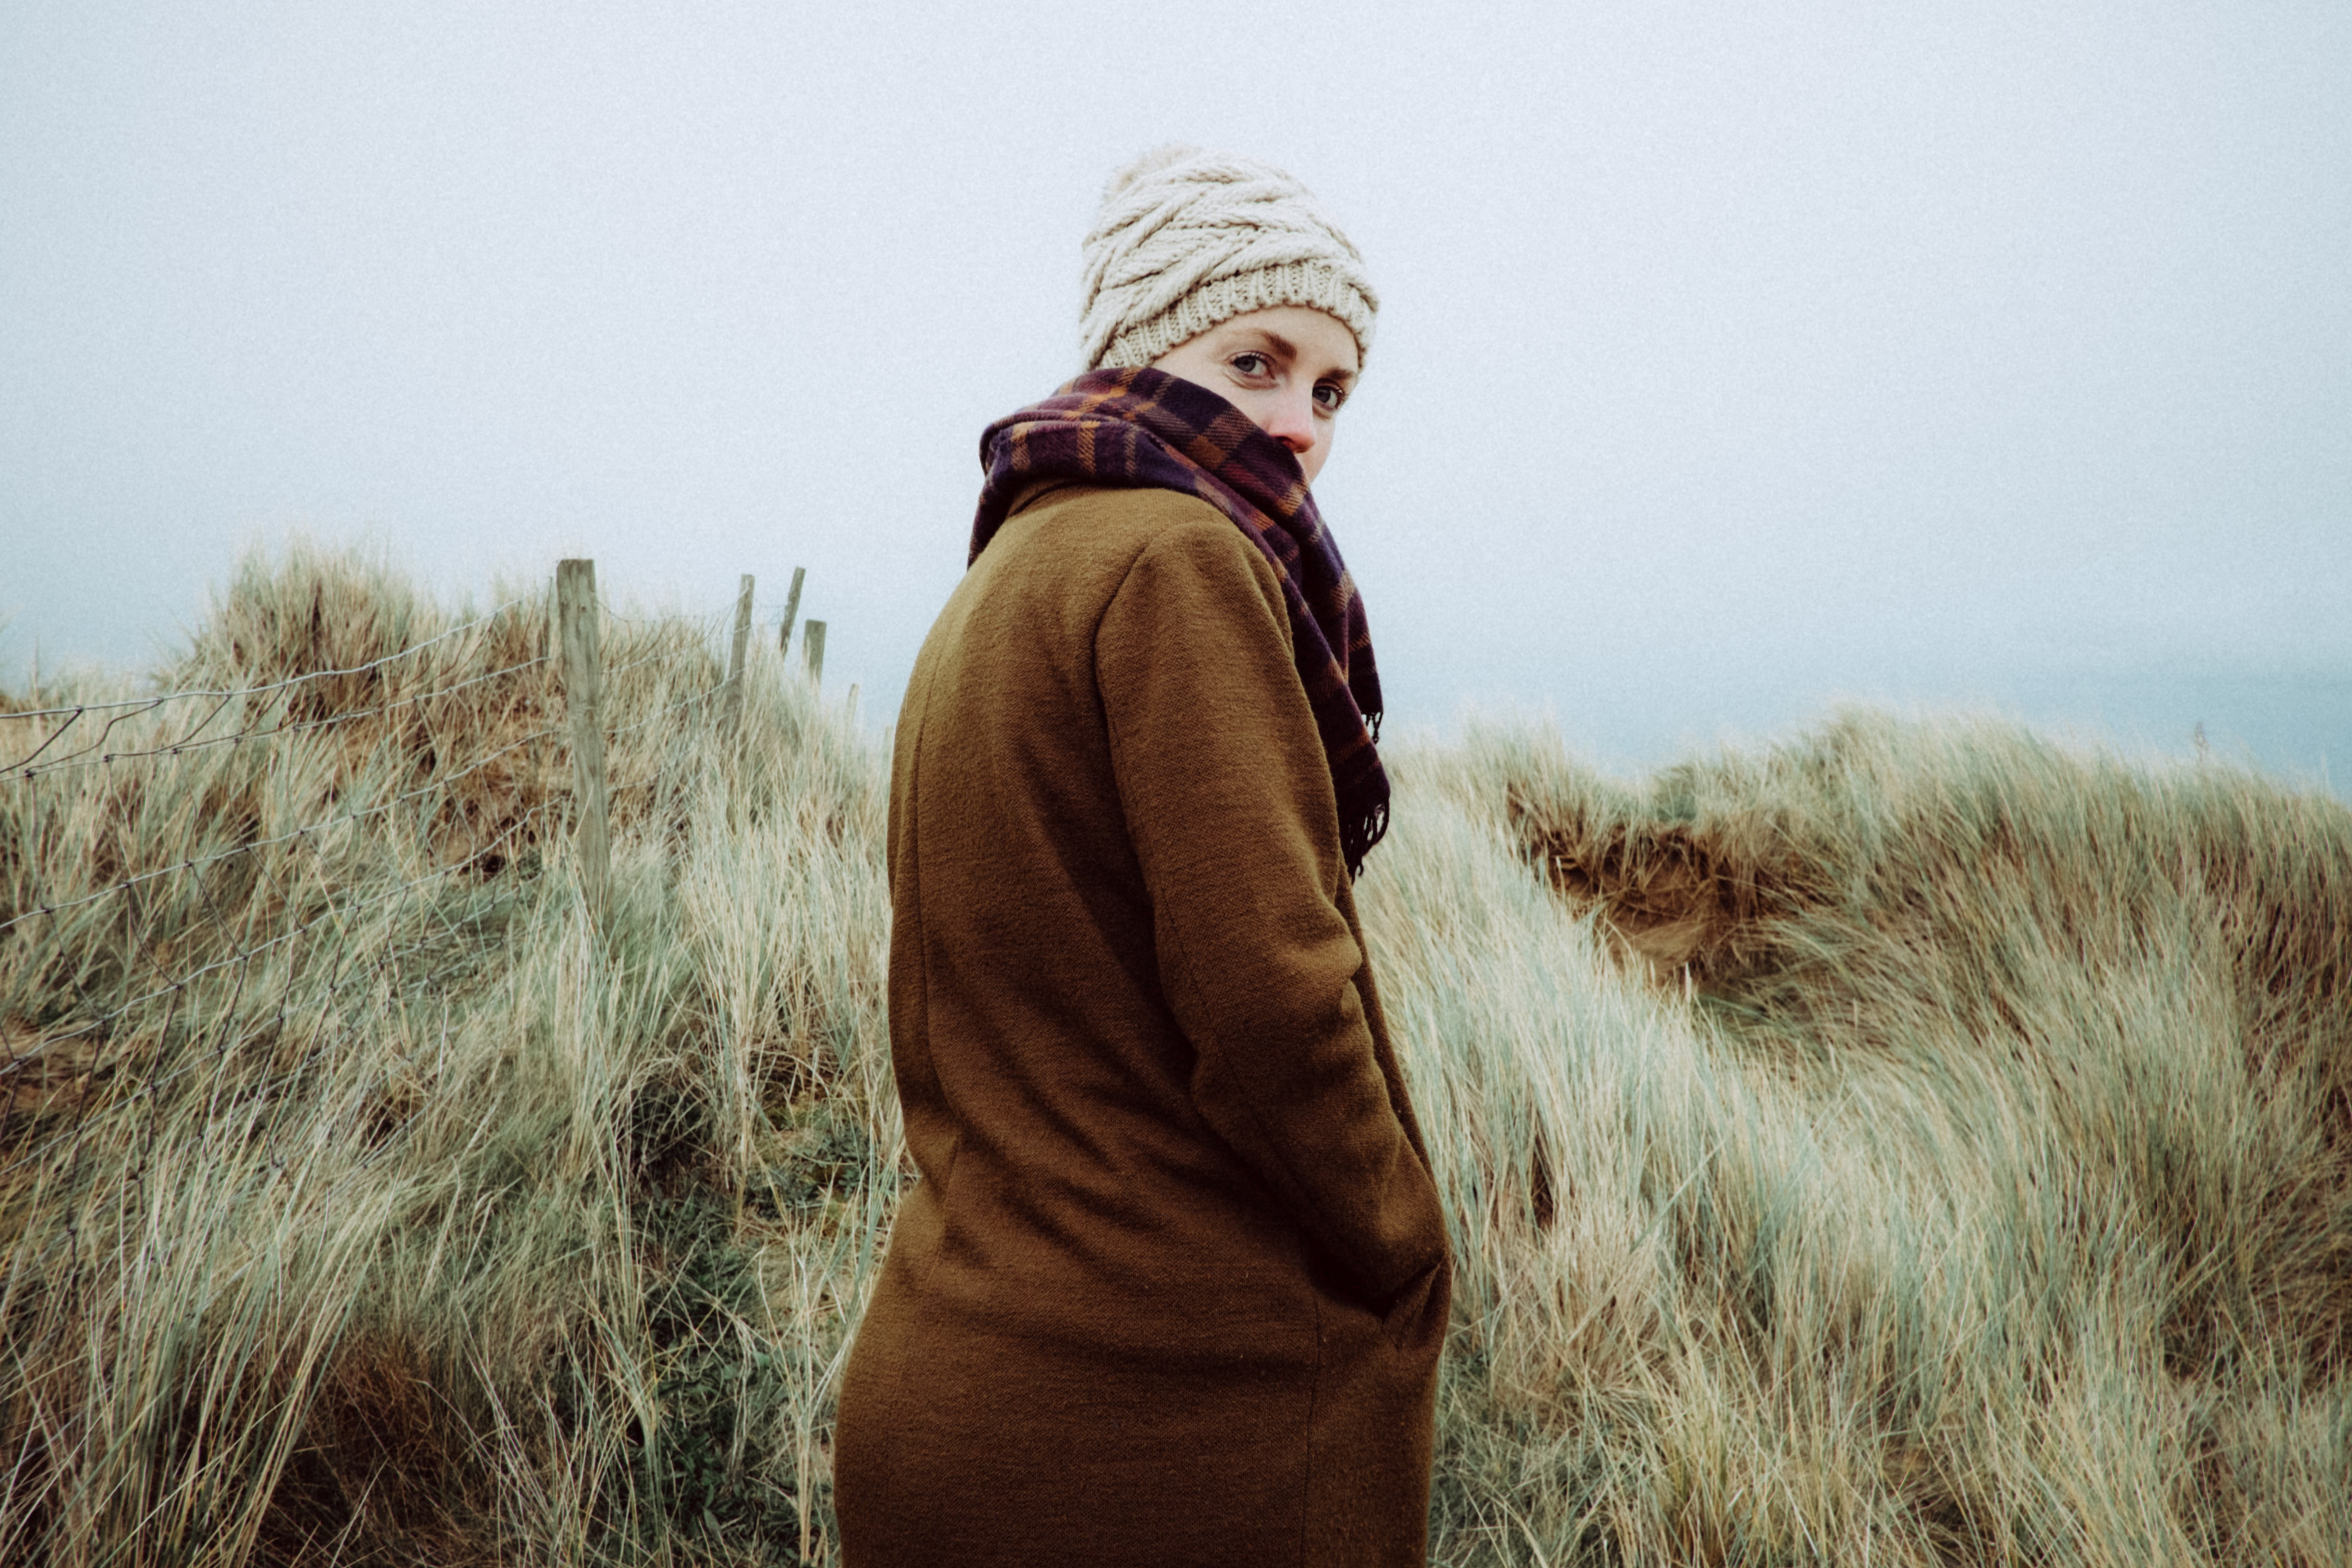 A woman in a knit cap and sweater turns toward the camera among coastal dunes